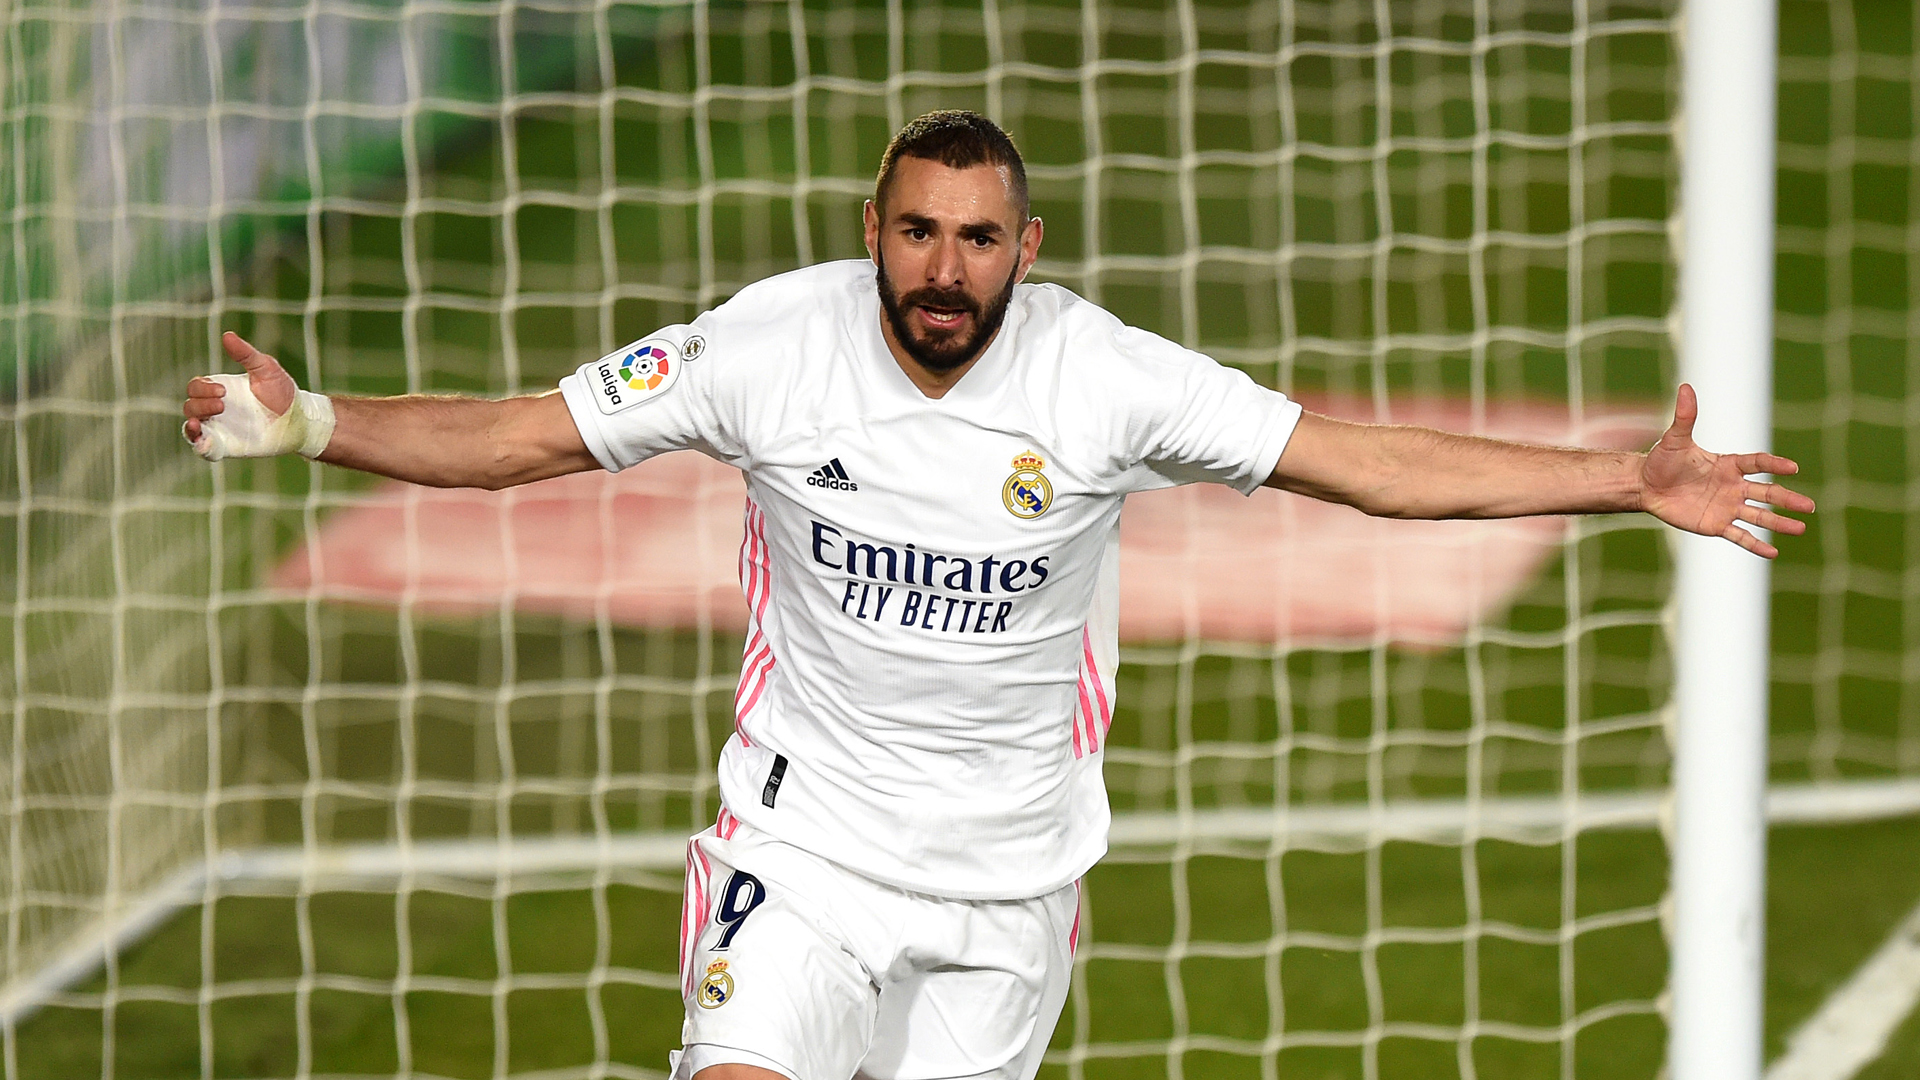 Real Madrid match-winner Benzema is 'on a different level', says Zidane